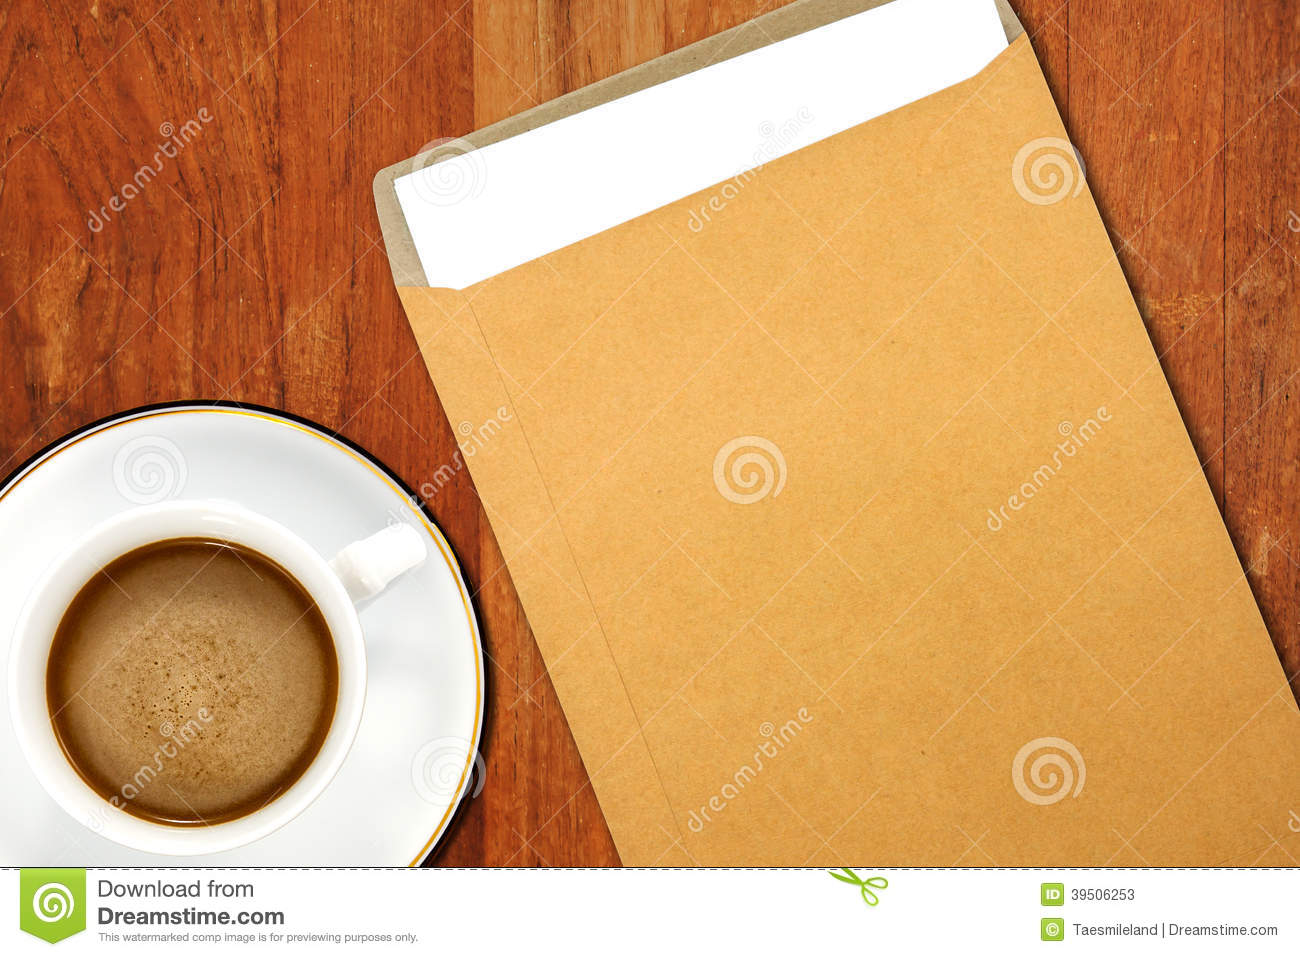 Brown Envelope document and a white coffee cup